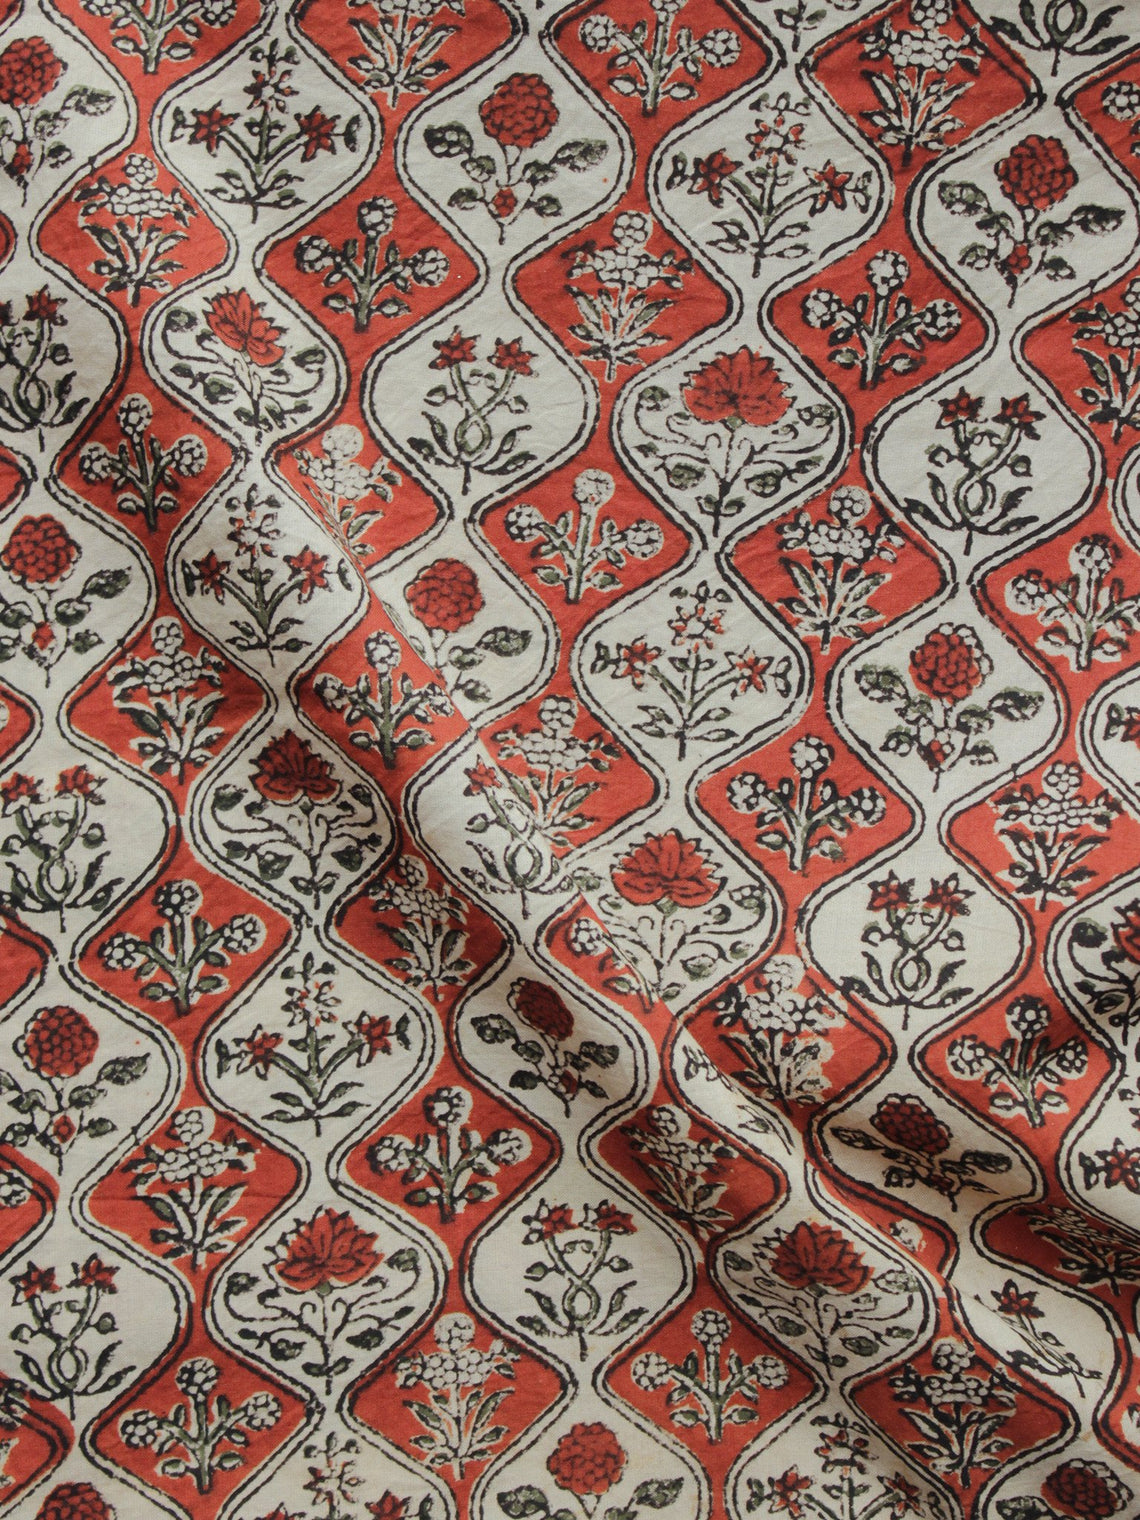 Maroon Green Beige Black Hand Block Printed Cotton Fabric Per Meter - F001F896